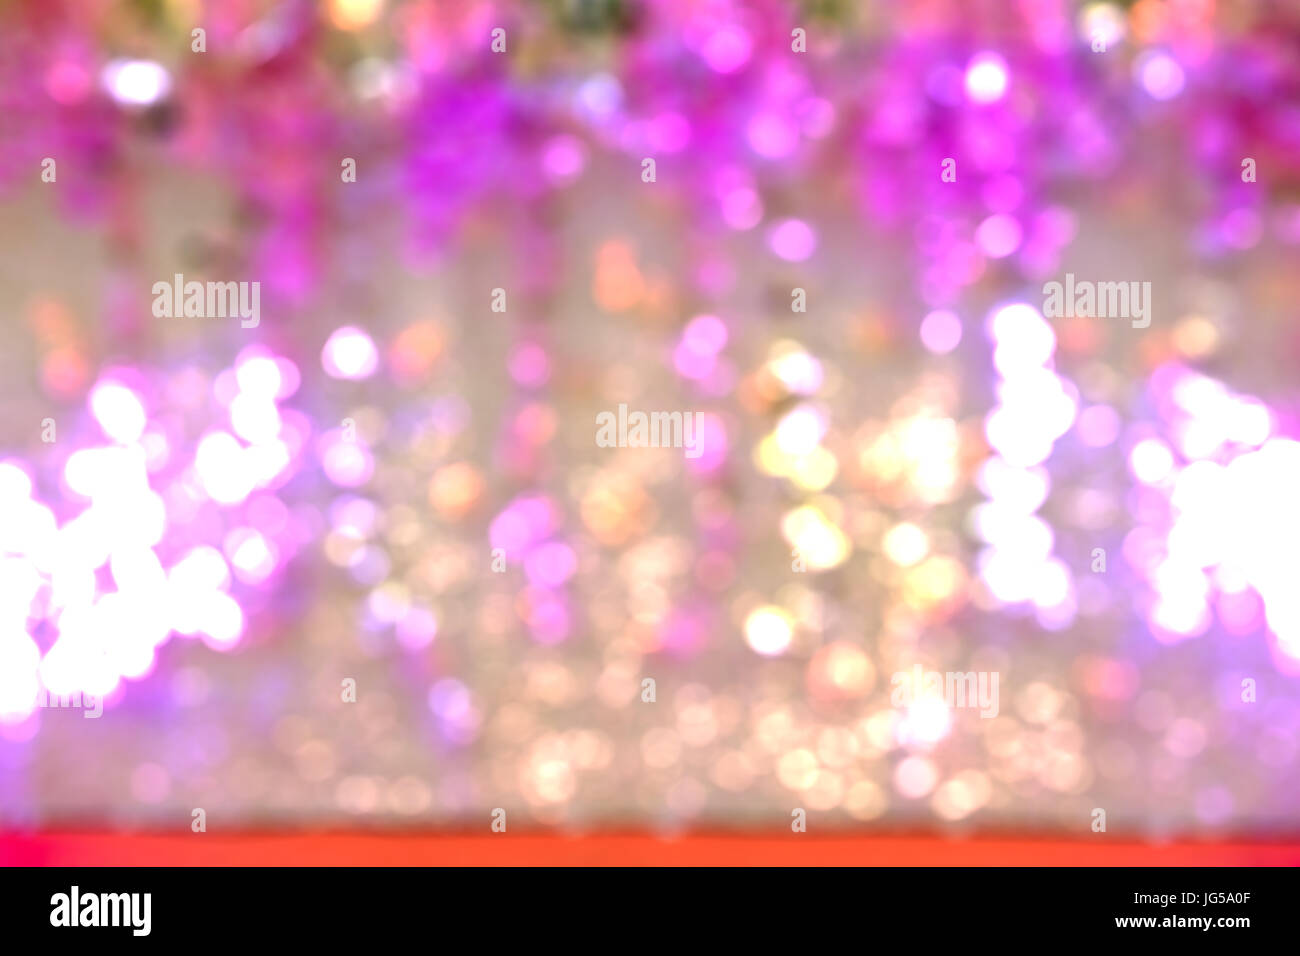 Beautiful Defocused pink and white flower backdrop white spot light ...